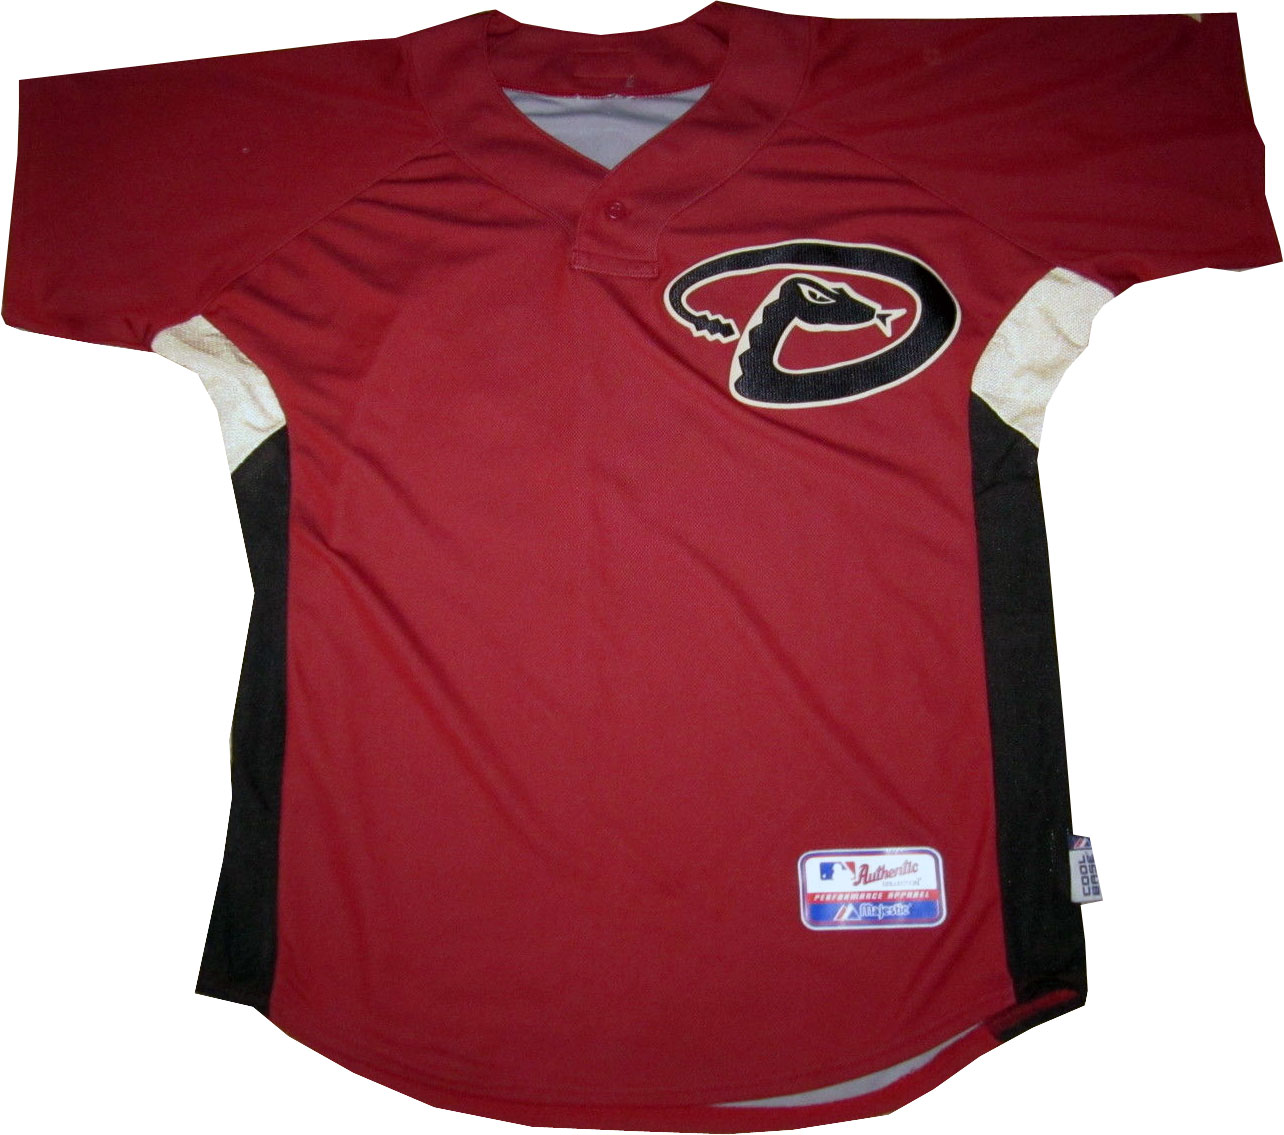 Arizona Diamondbacks Game-Worn Jersey Photo Jersey Photo (2007-2009) - Game worn Arizona Diamondbacks red batting practice jersey, this style worn during spring training and batting practice from 2007 to 2009 SportsLogos.Net